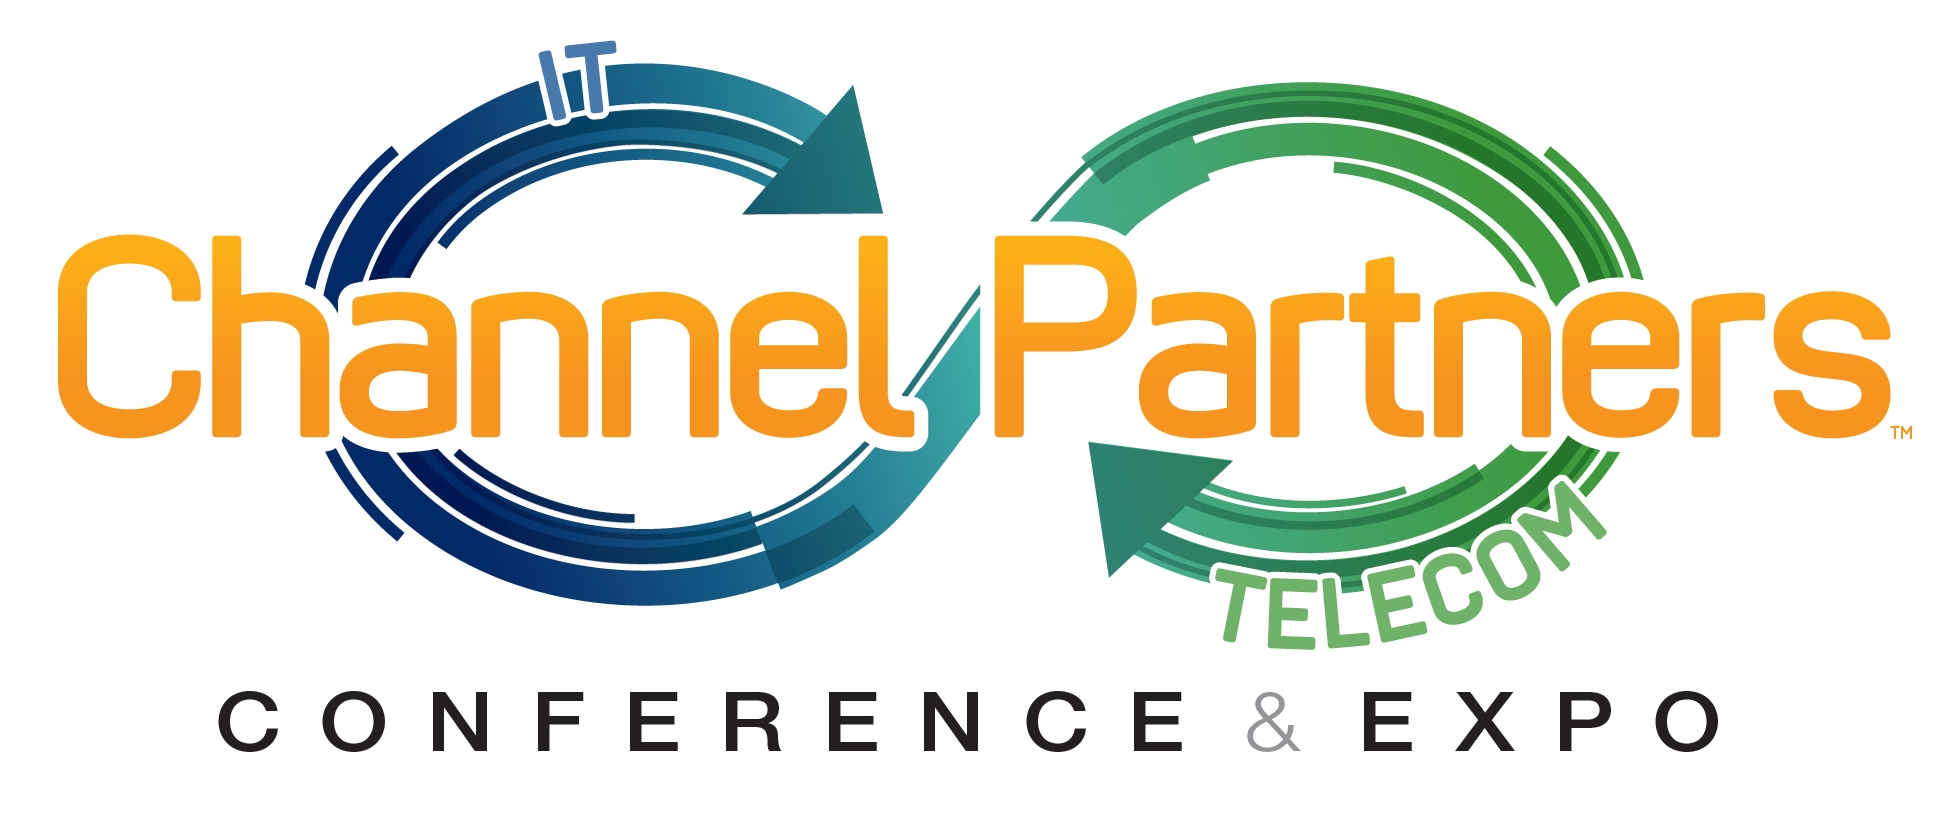 Aqua Connect and RapidScale To Host First CloudTalk Events At Channel Partners in Las Vegas